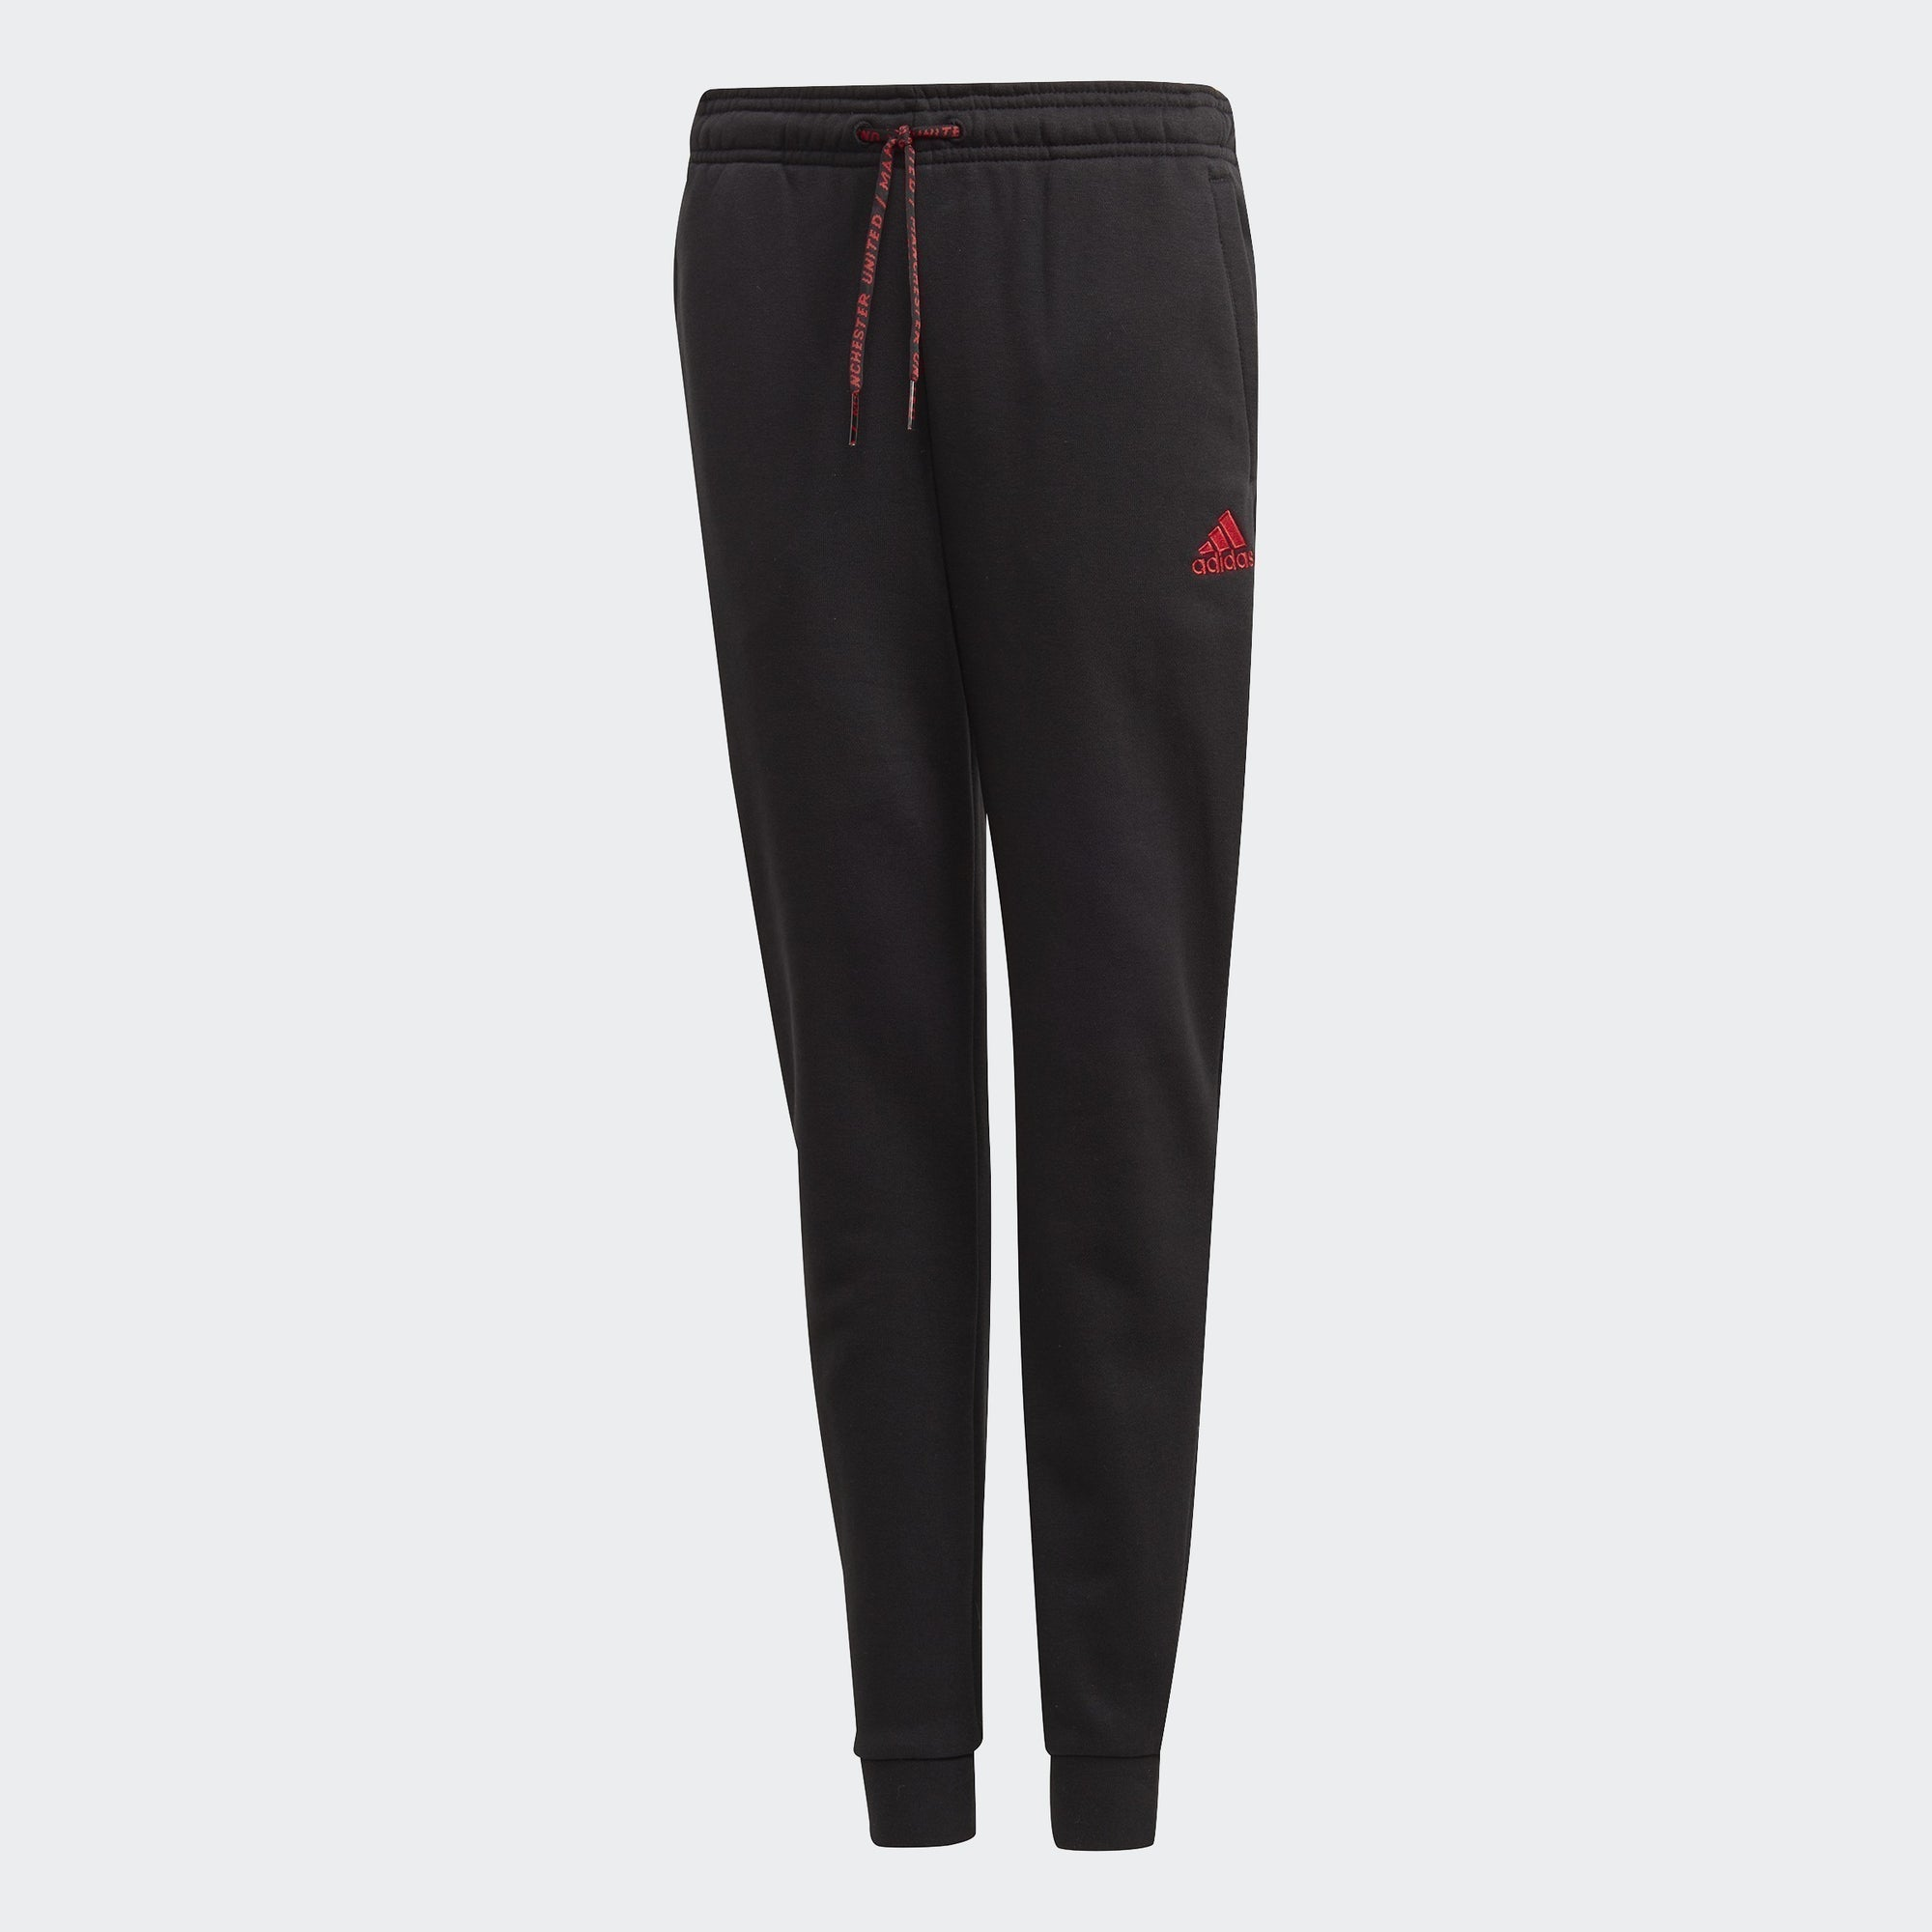 Kid's Manchester United Pants - Black